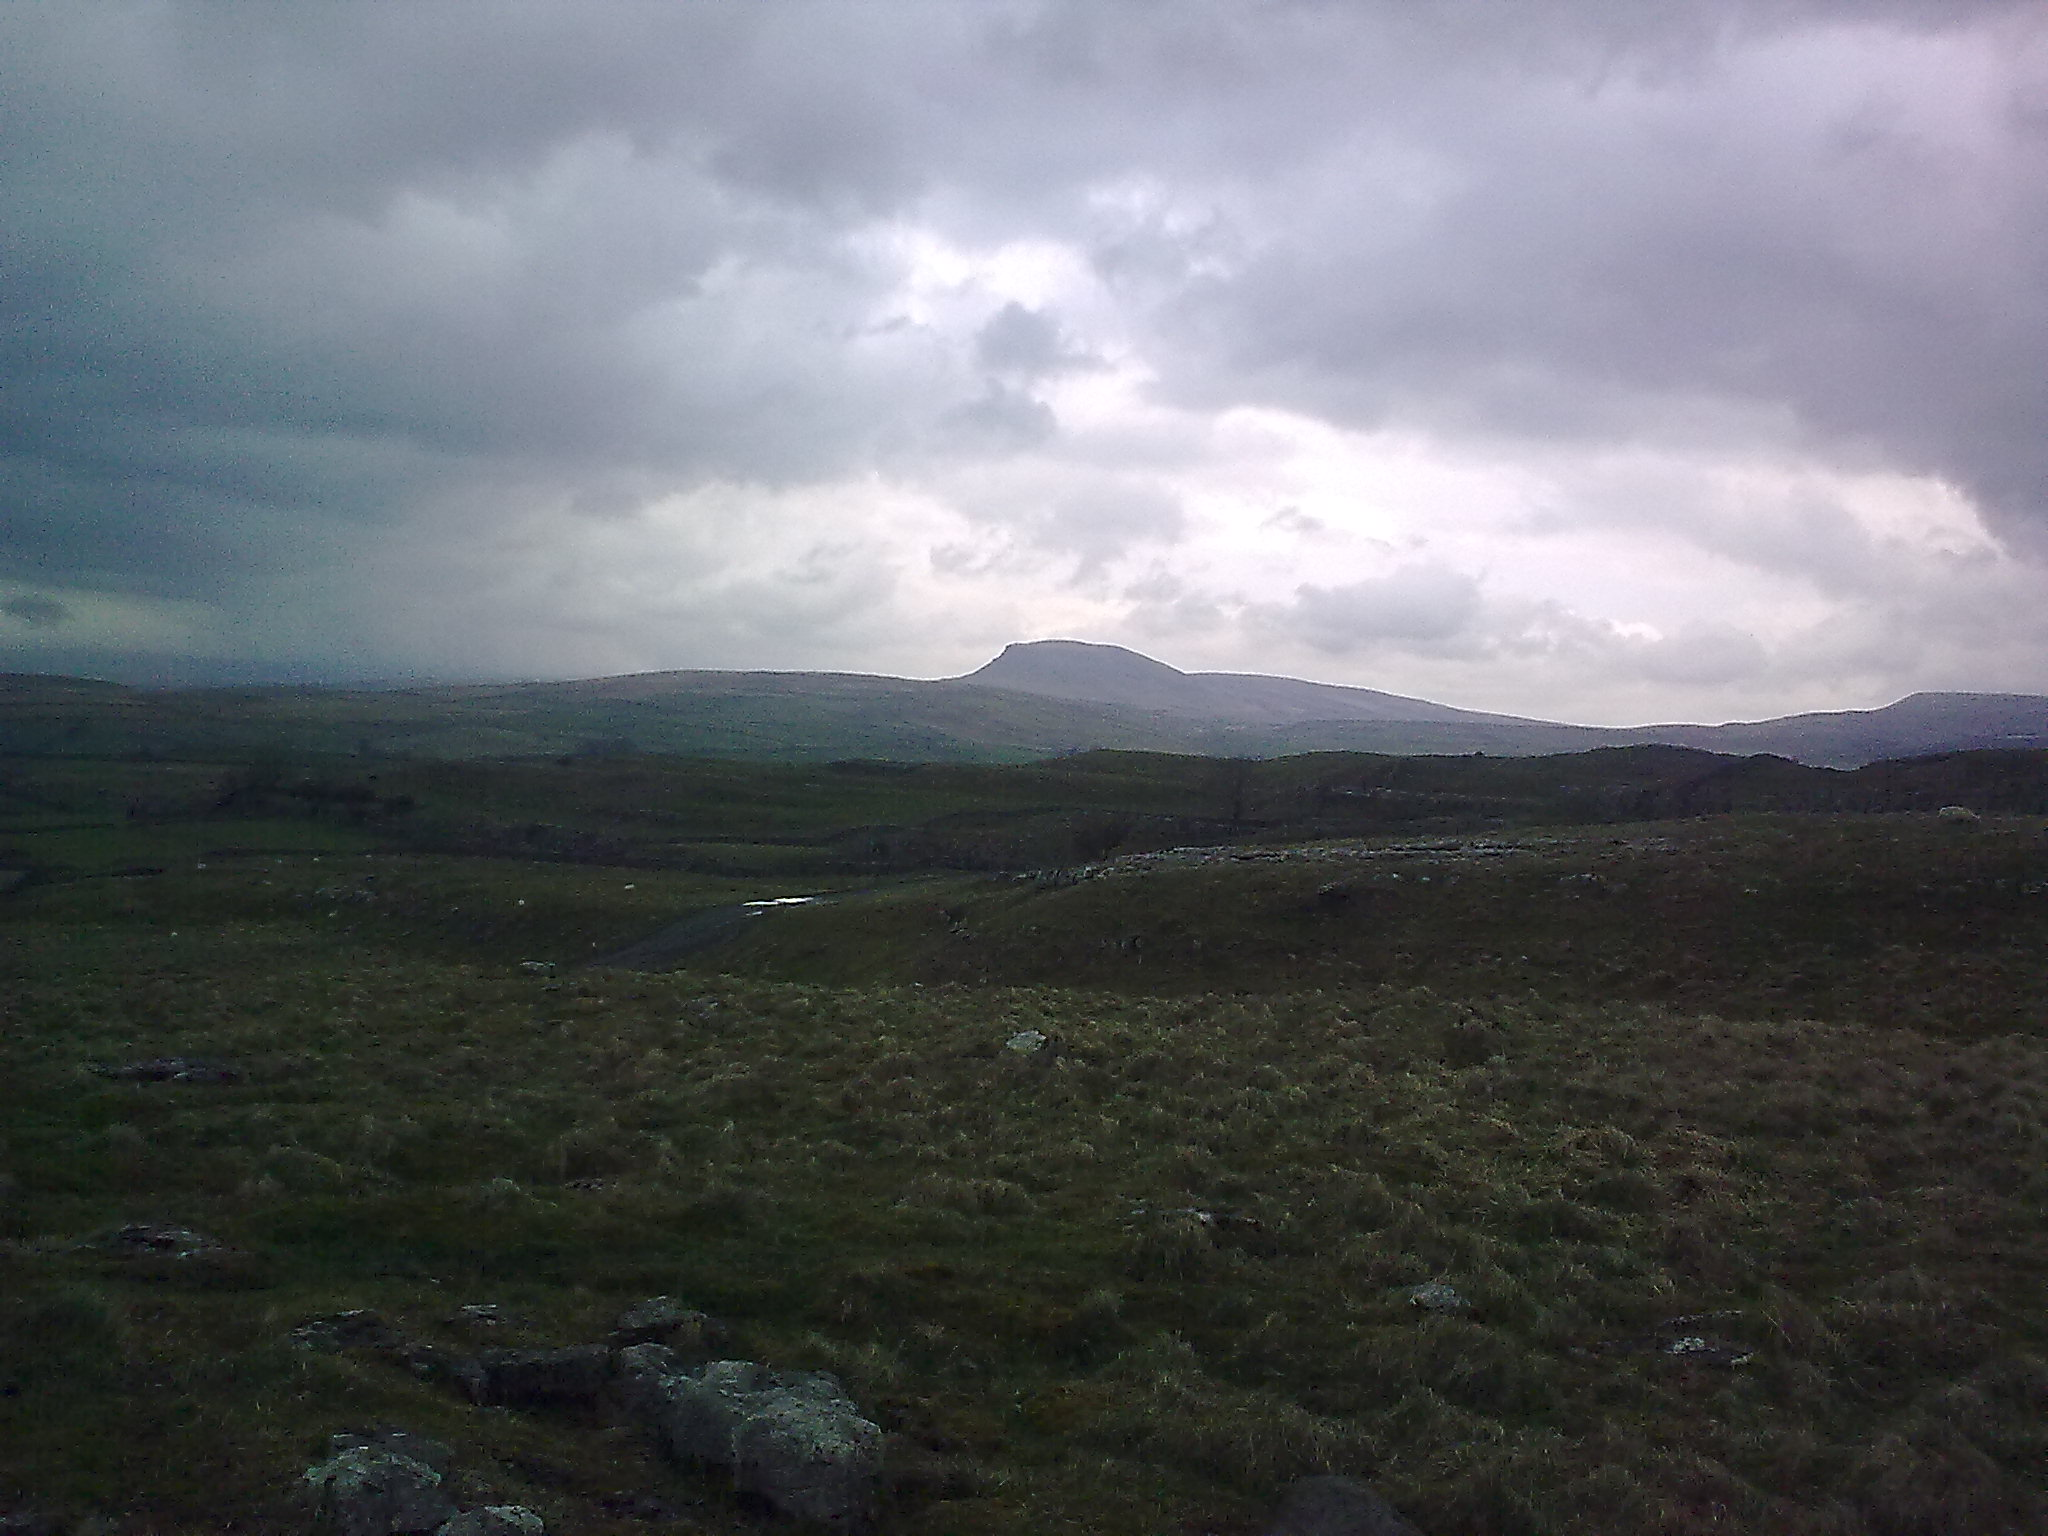 Pen-y-ghent, one of the Yorkshire Three Peaks